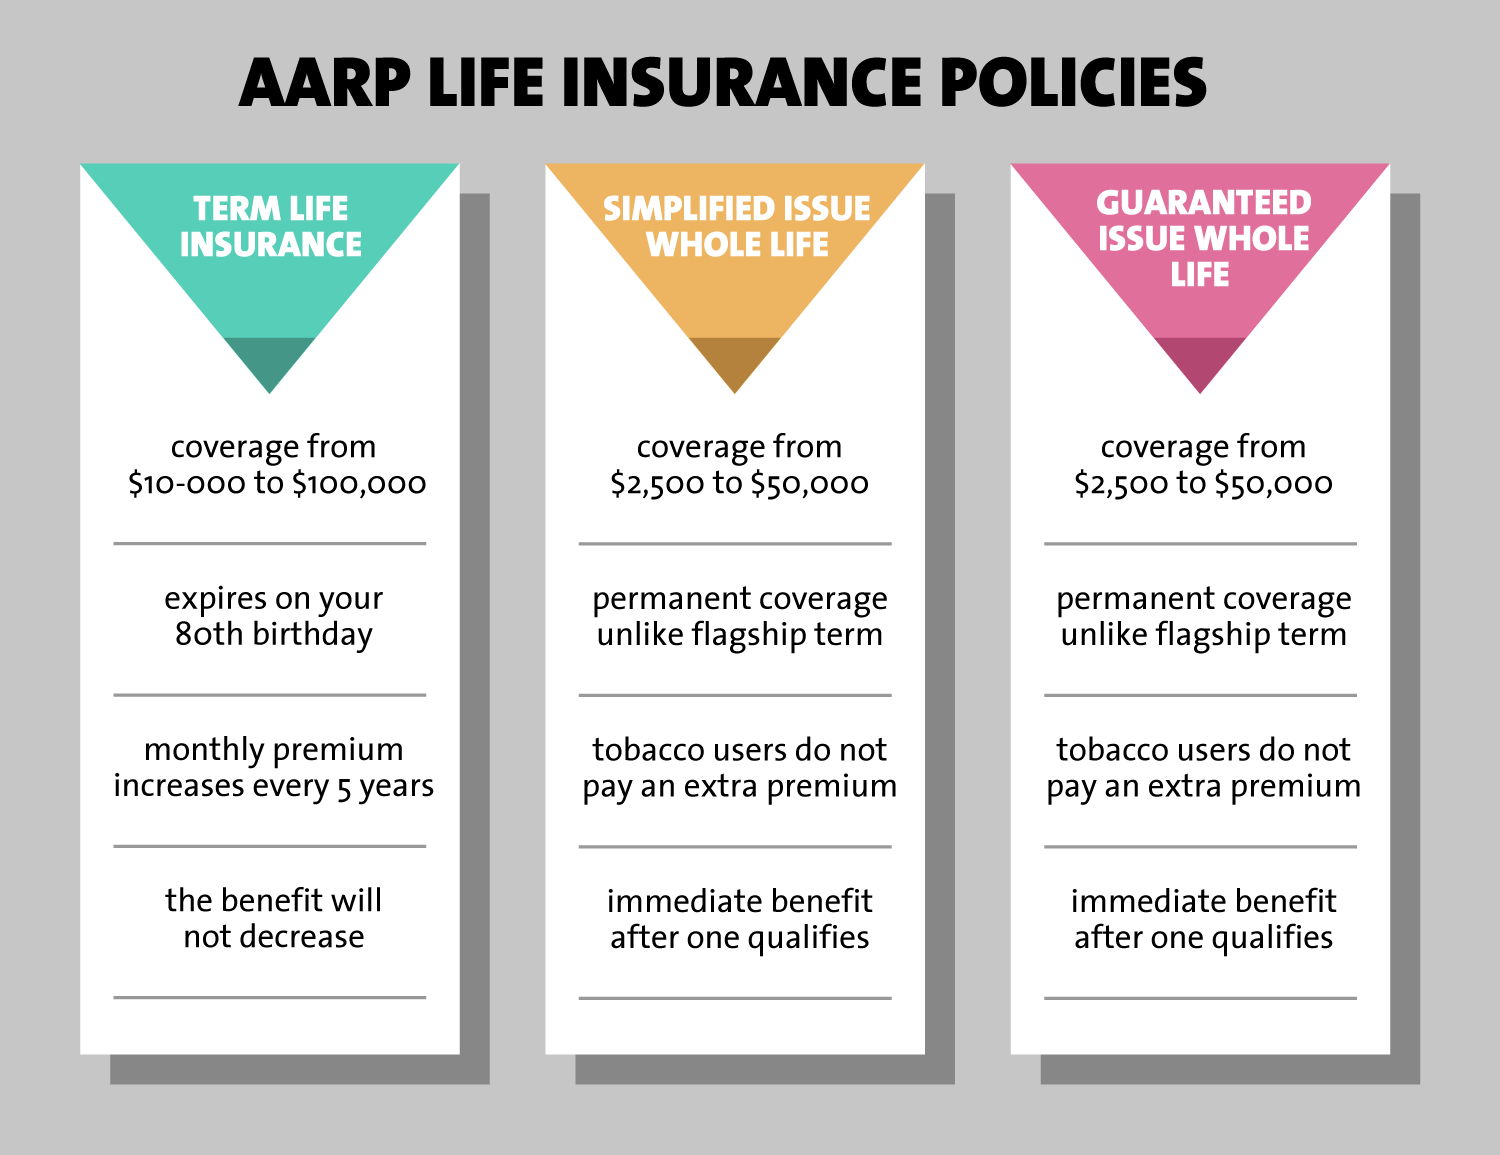 AARP Life Insurance Policies | Burial Insurance Pro